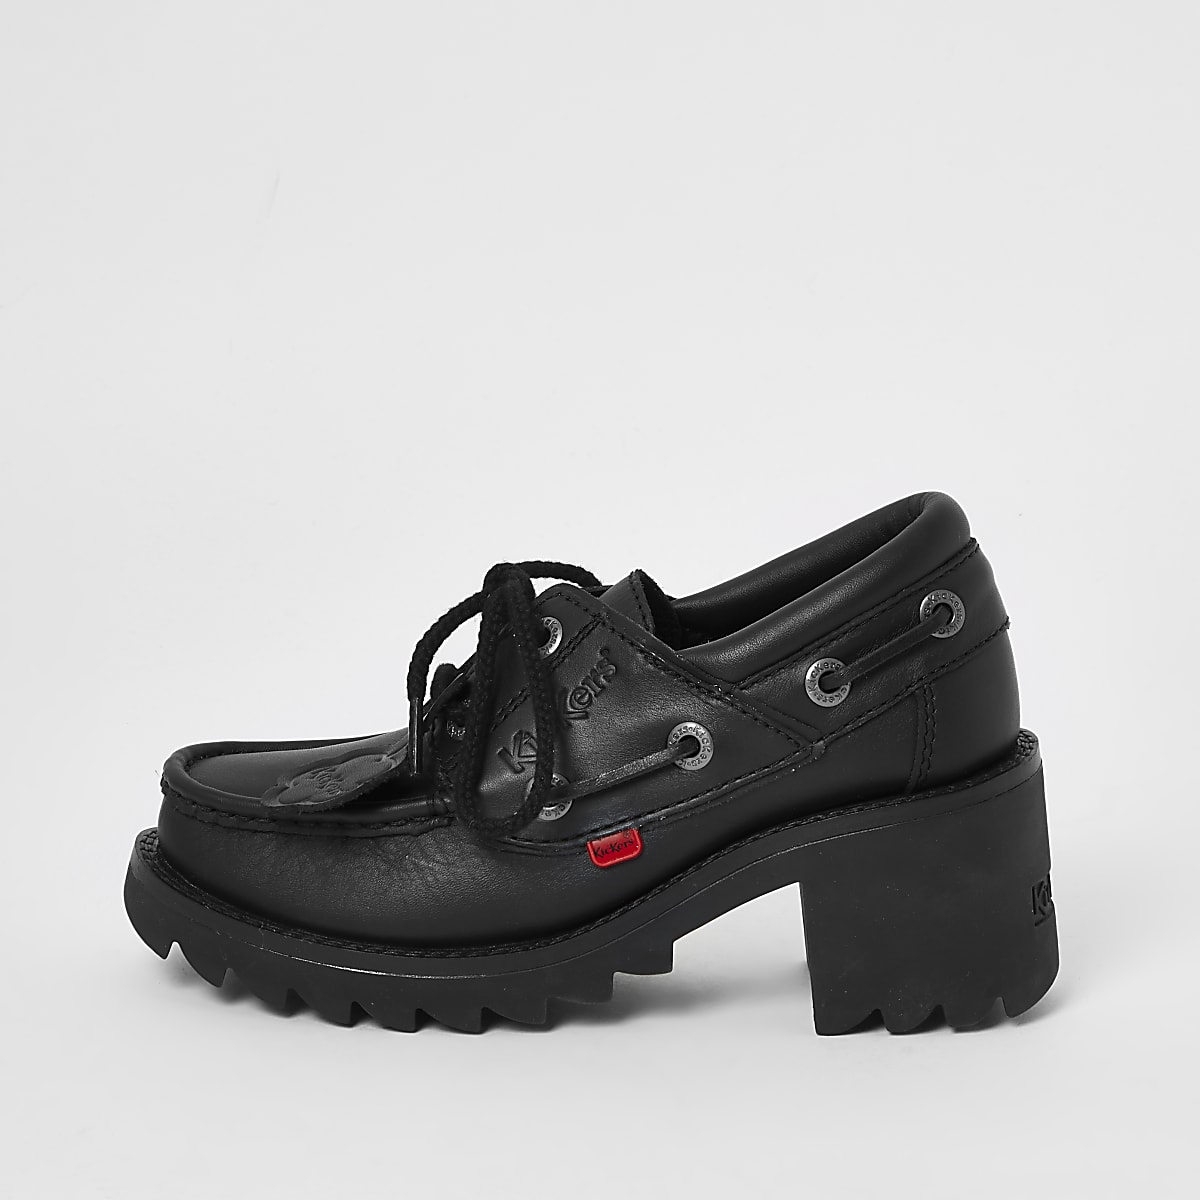 Kickers black lace-up heeled loafer